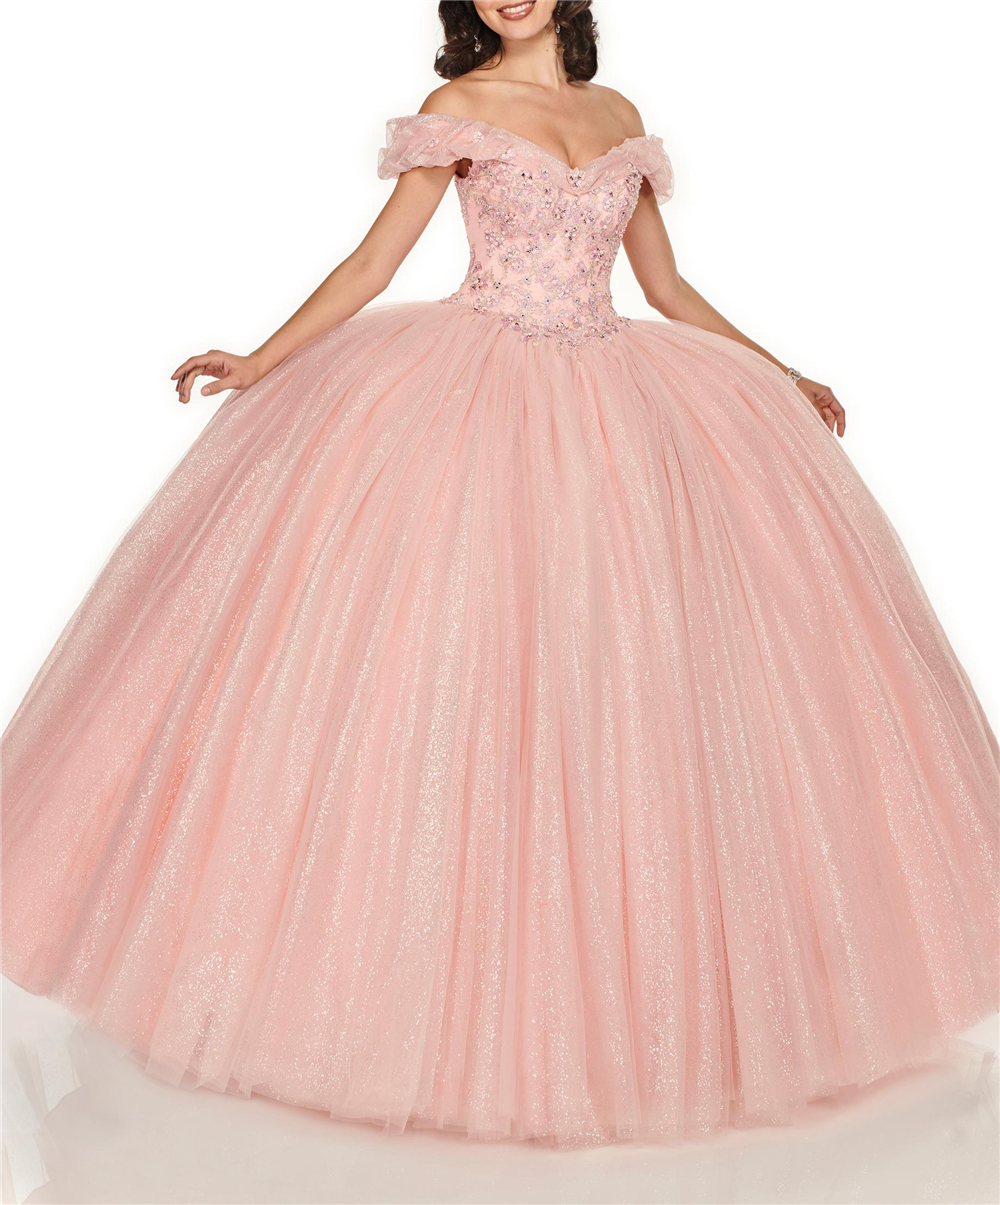 Sparkling Bling Sequins Crystals Beading Off The Shoulder Ball Gown Lace-Up Sweet 16 Dresses Quinceanera Gowns